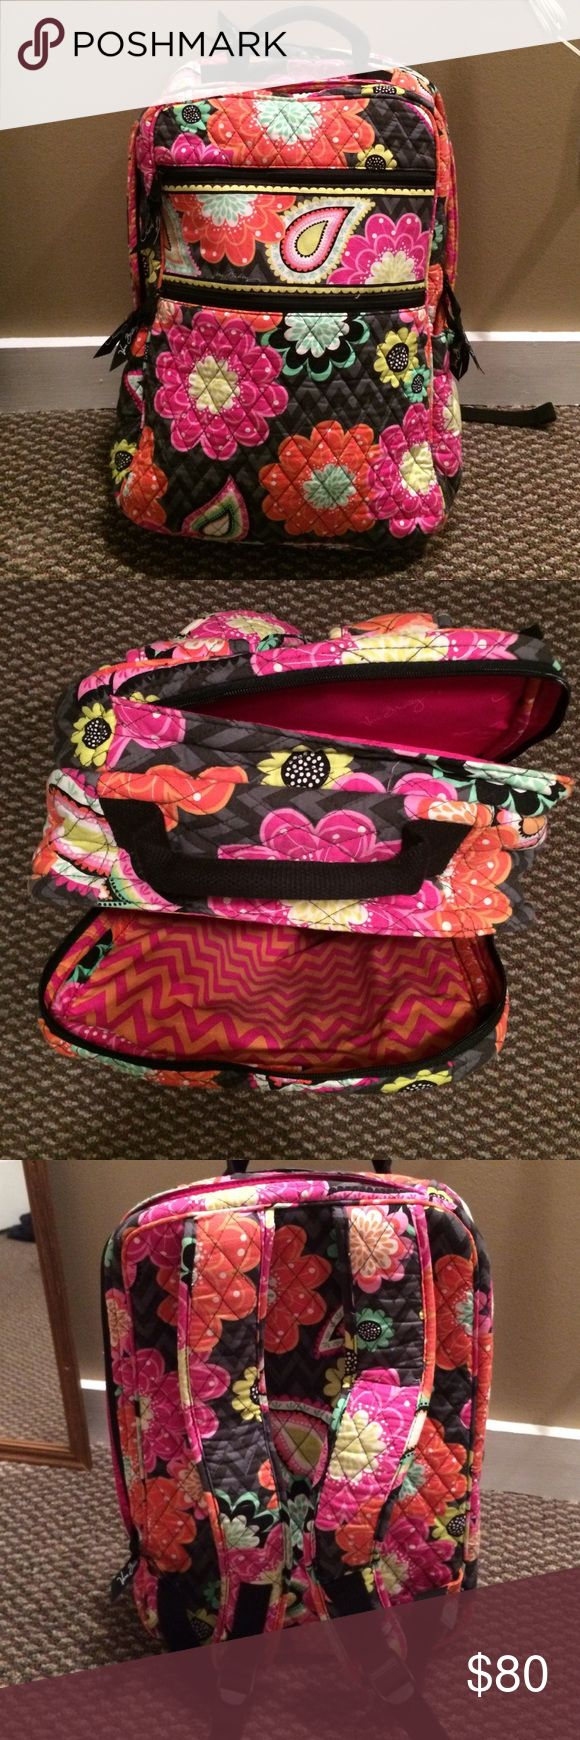 Vera Bradley backpack Floral bright Vera Bradley laptop backpack. One small rip on the left shoulder, easily fixable. Slightly used. Colors still very vibrant. Ziggy Zinnia Vera Bradley Bags Backpacks